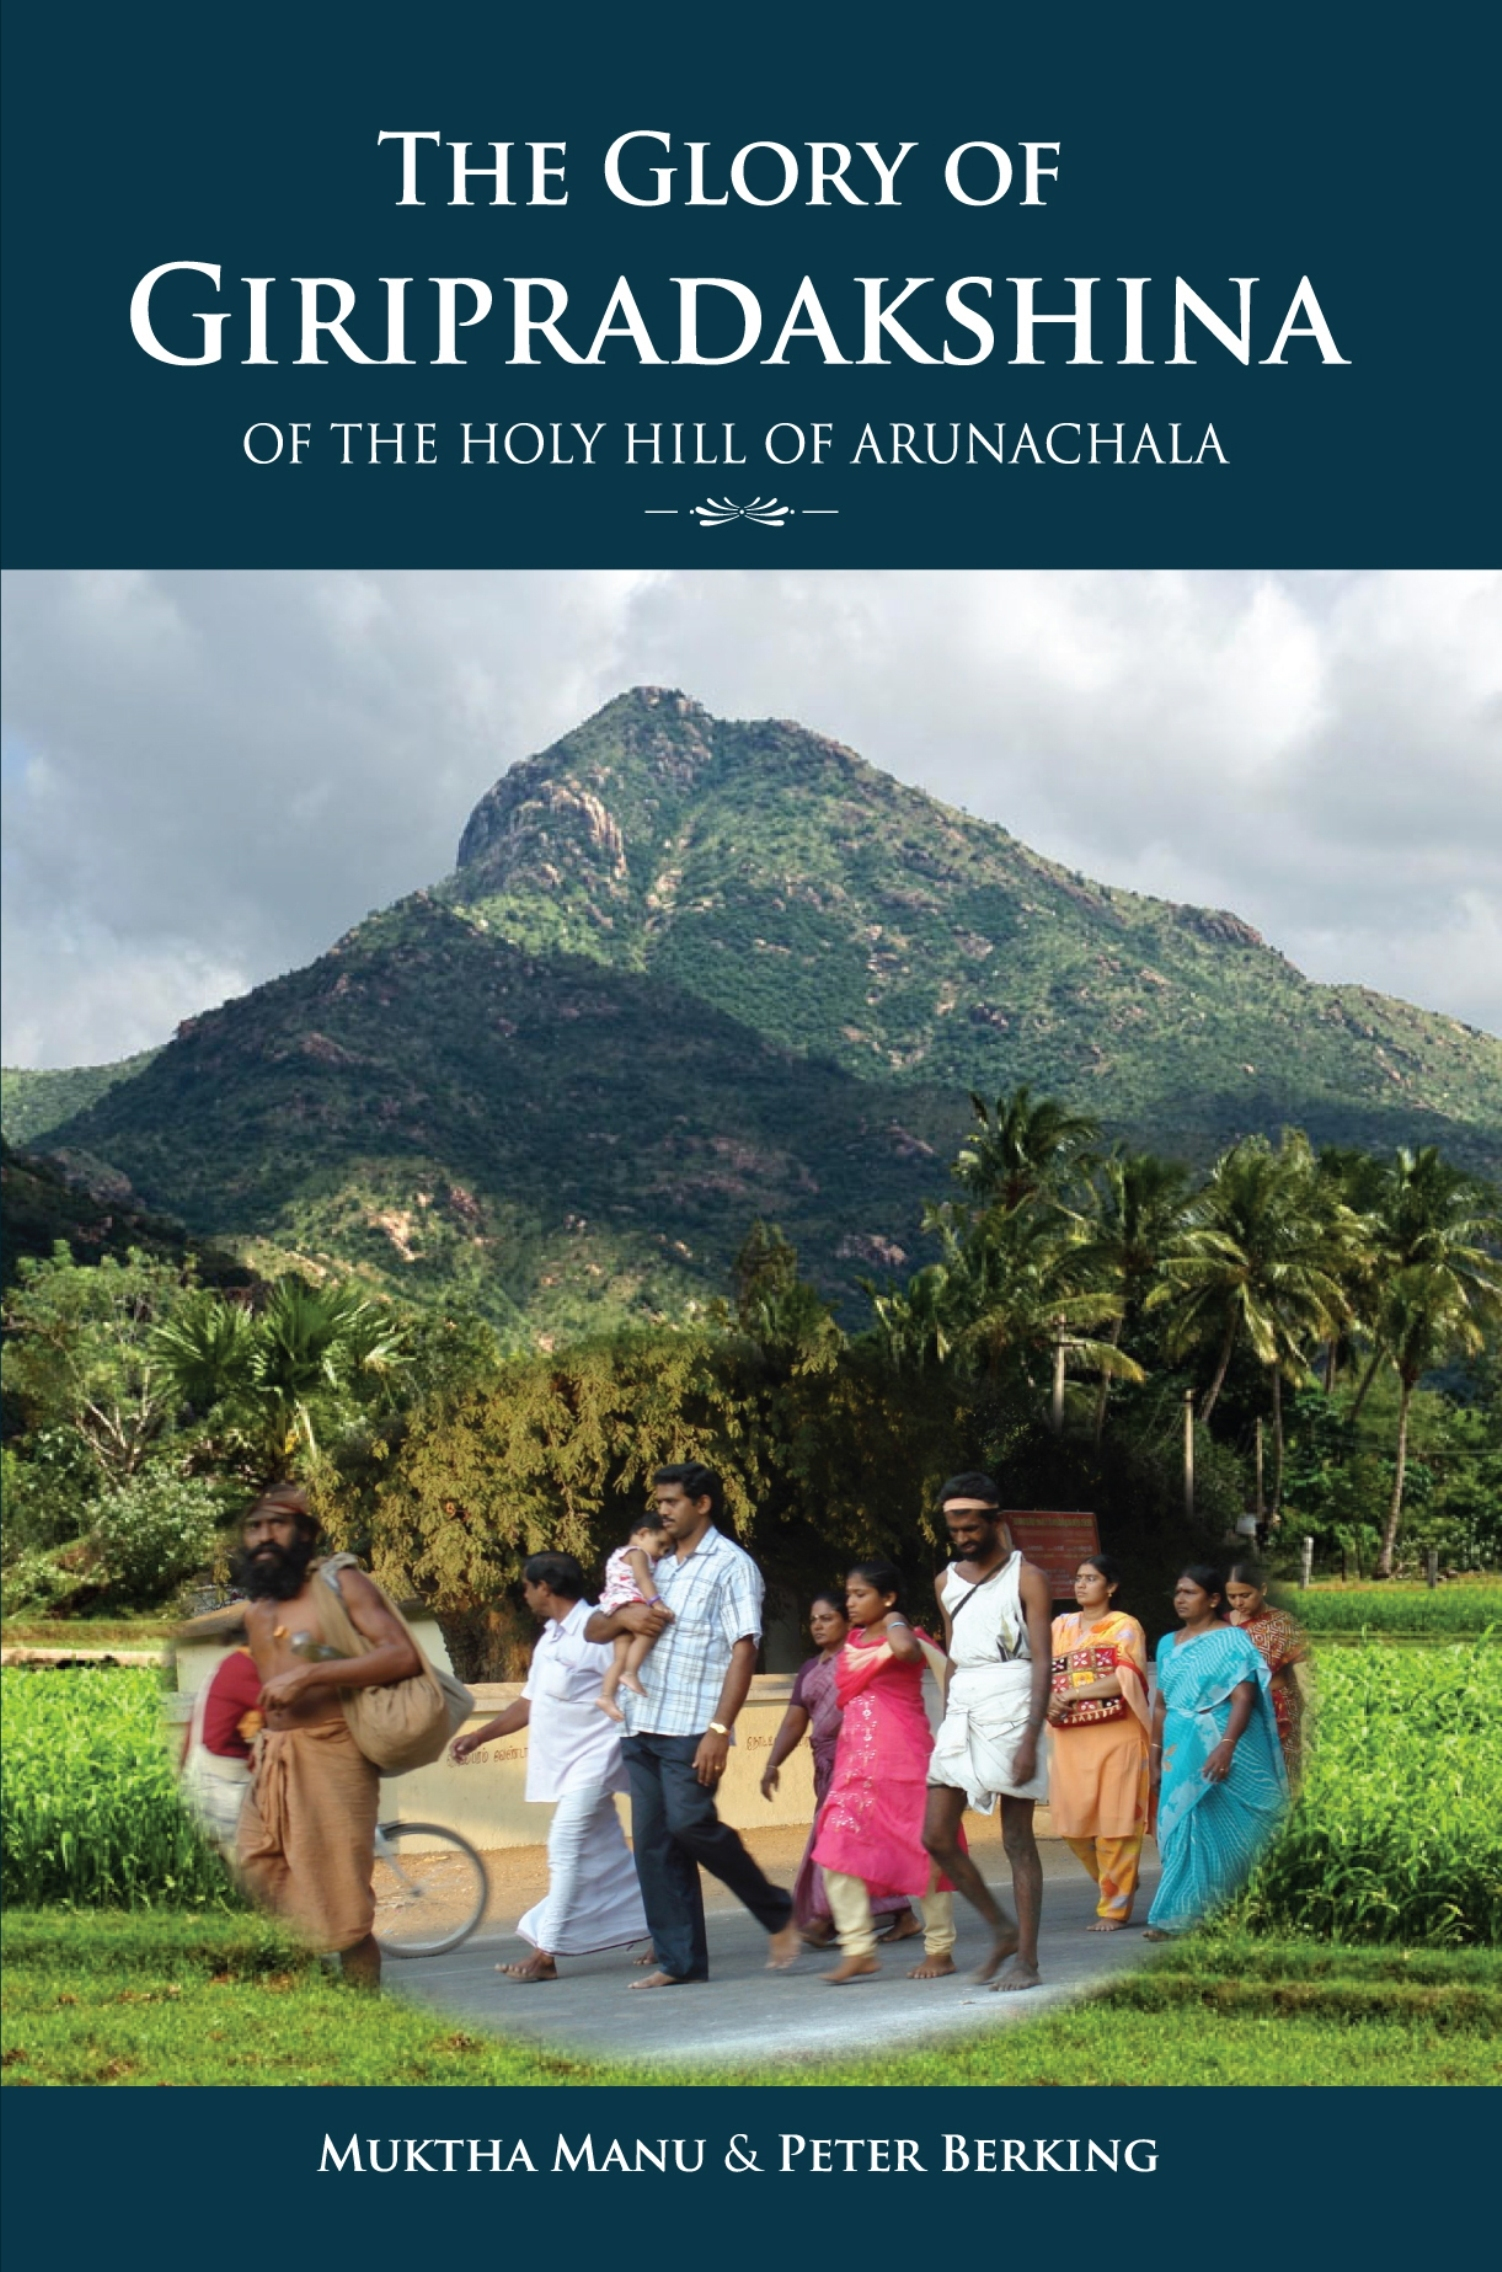 The Glory Of Giripradakshina Of The Holy Hill Of Arunachala